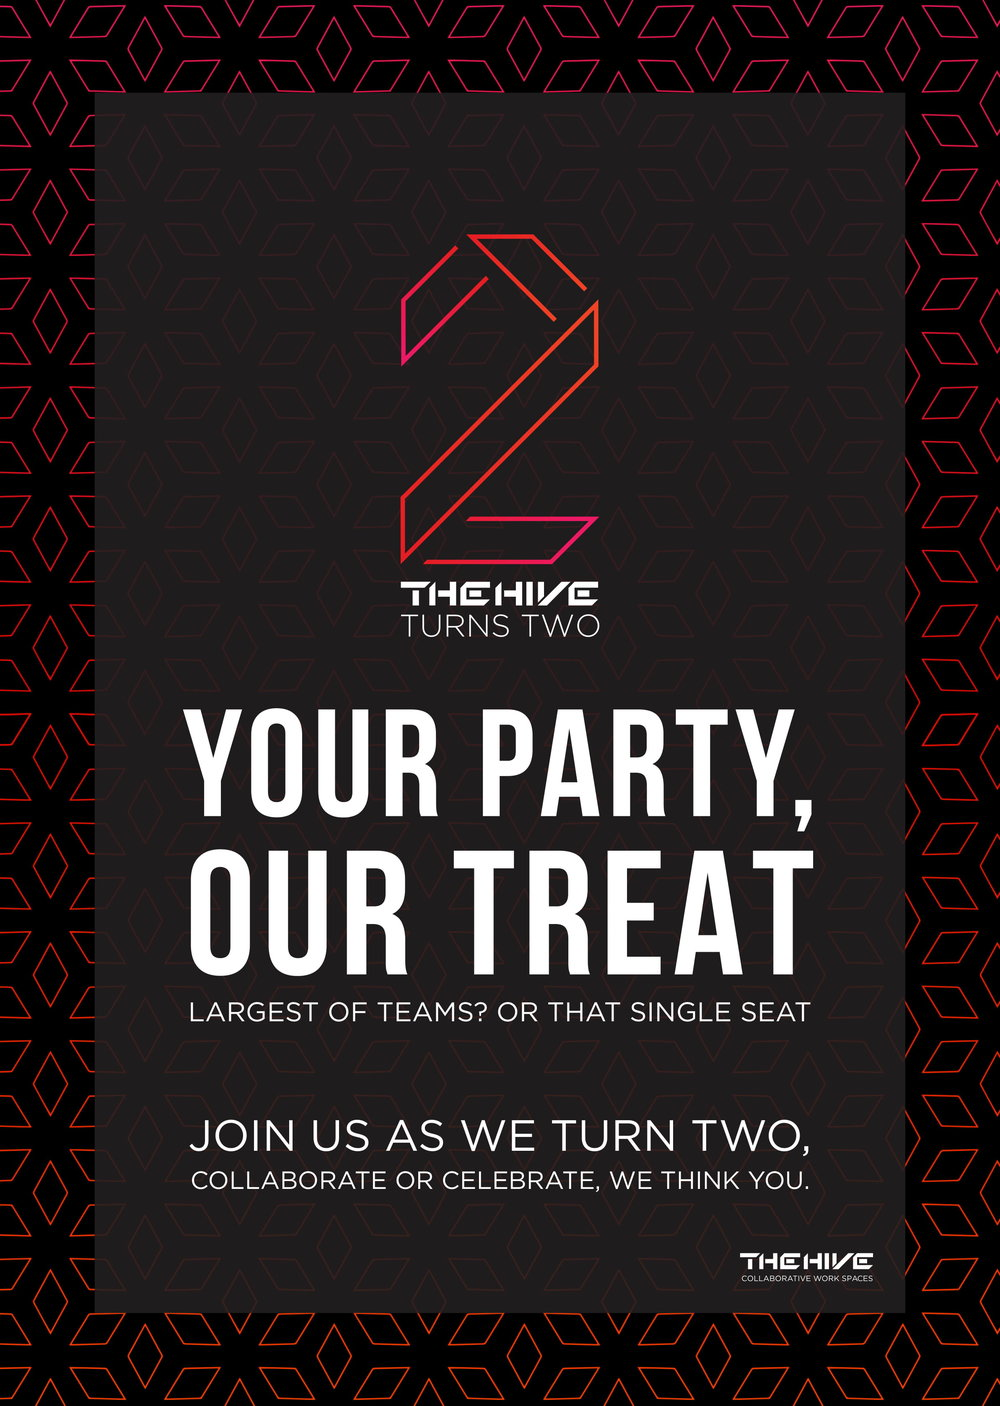 As we turn two . . . there is no one else we want to celebrate this with . . . as much as you!